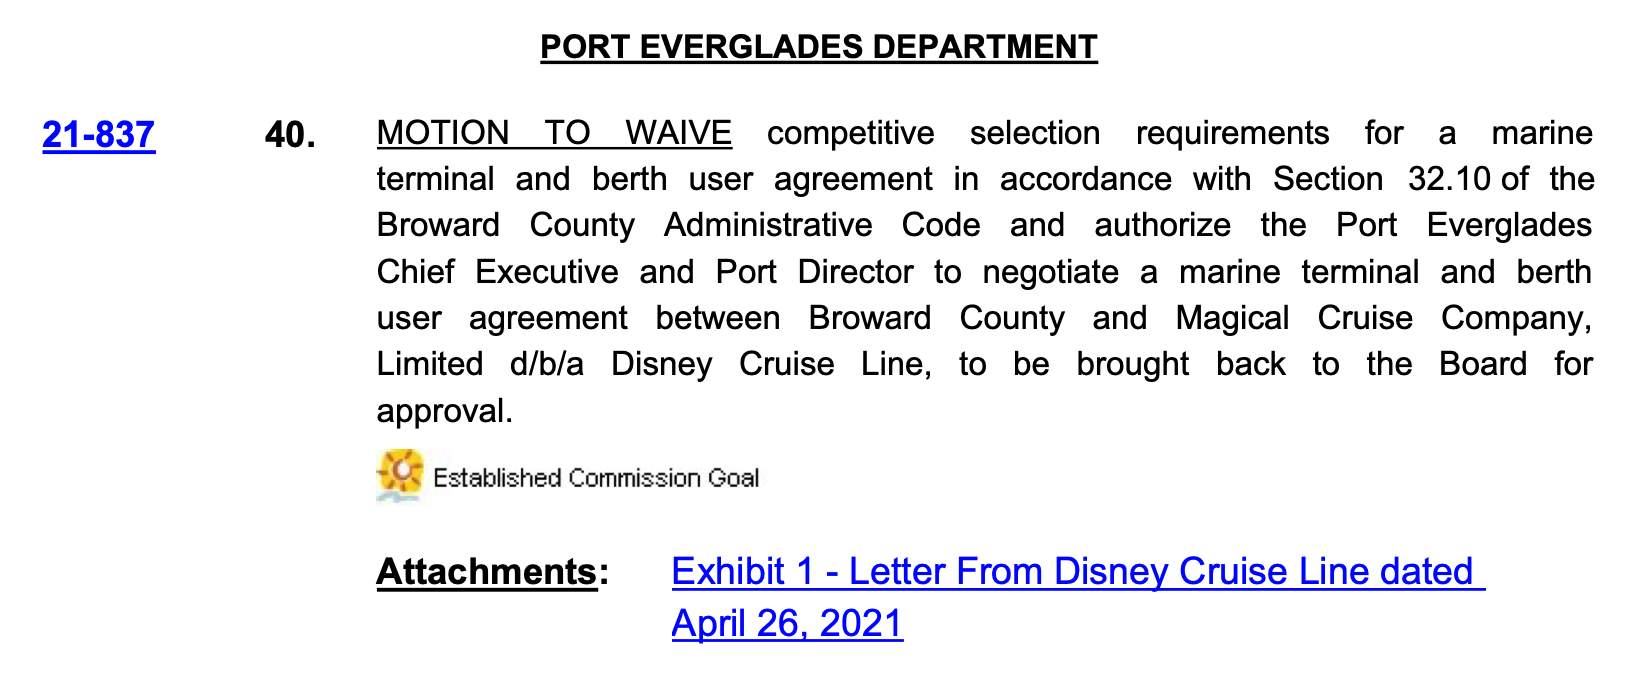 Port Everglades DCL Agenda Item 20210518